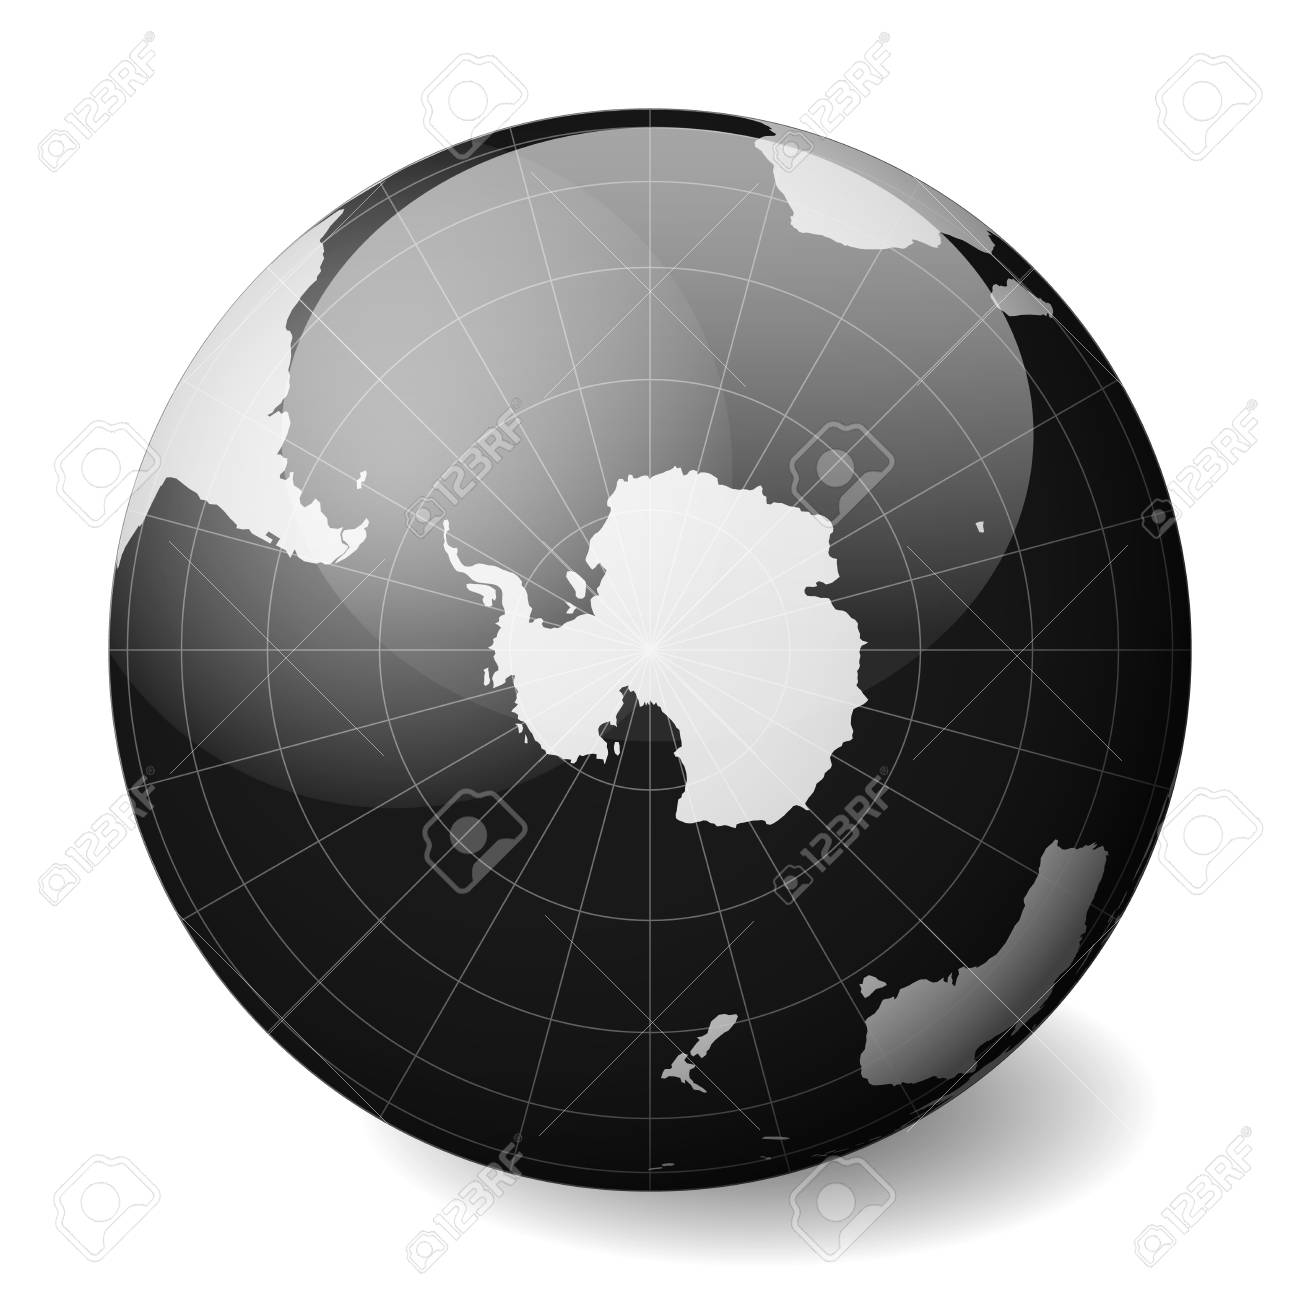 South Pole World Map.Earth Globe With White World Map And Black Seas And Oceans Focused